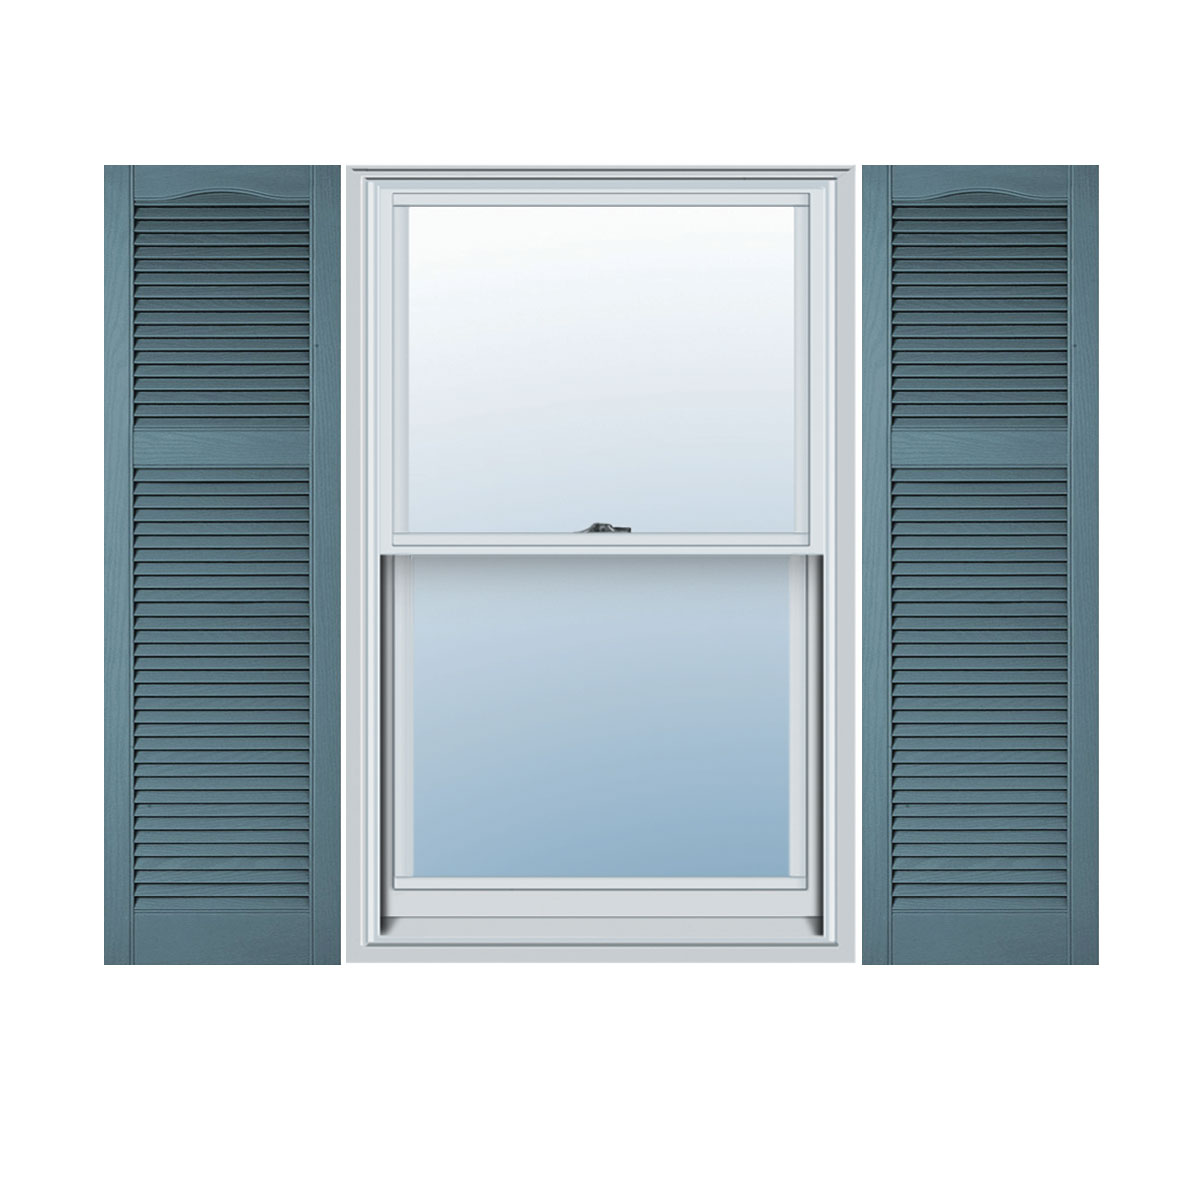 1200 #466A85 Size Cathedral Top Offset Mullion Vinyl Open Louver Window Shutters  wallpaper Vinyl Louvered Doors 29951200